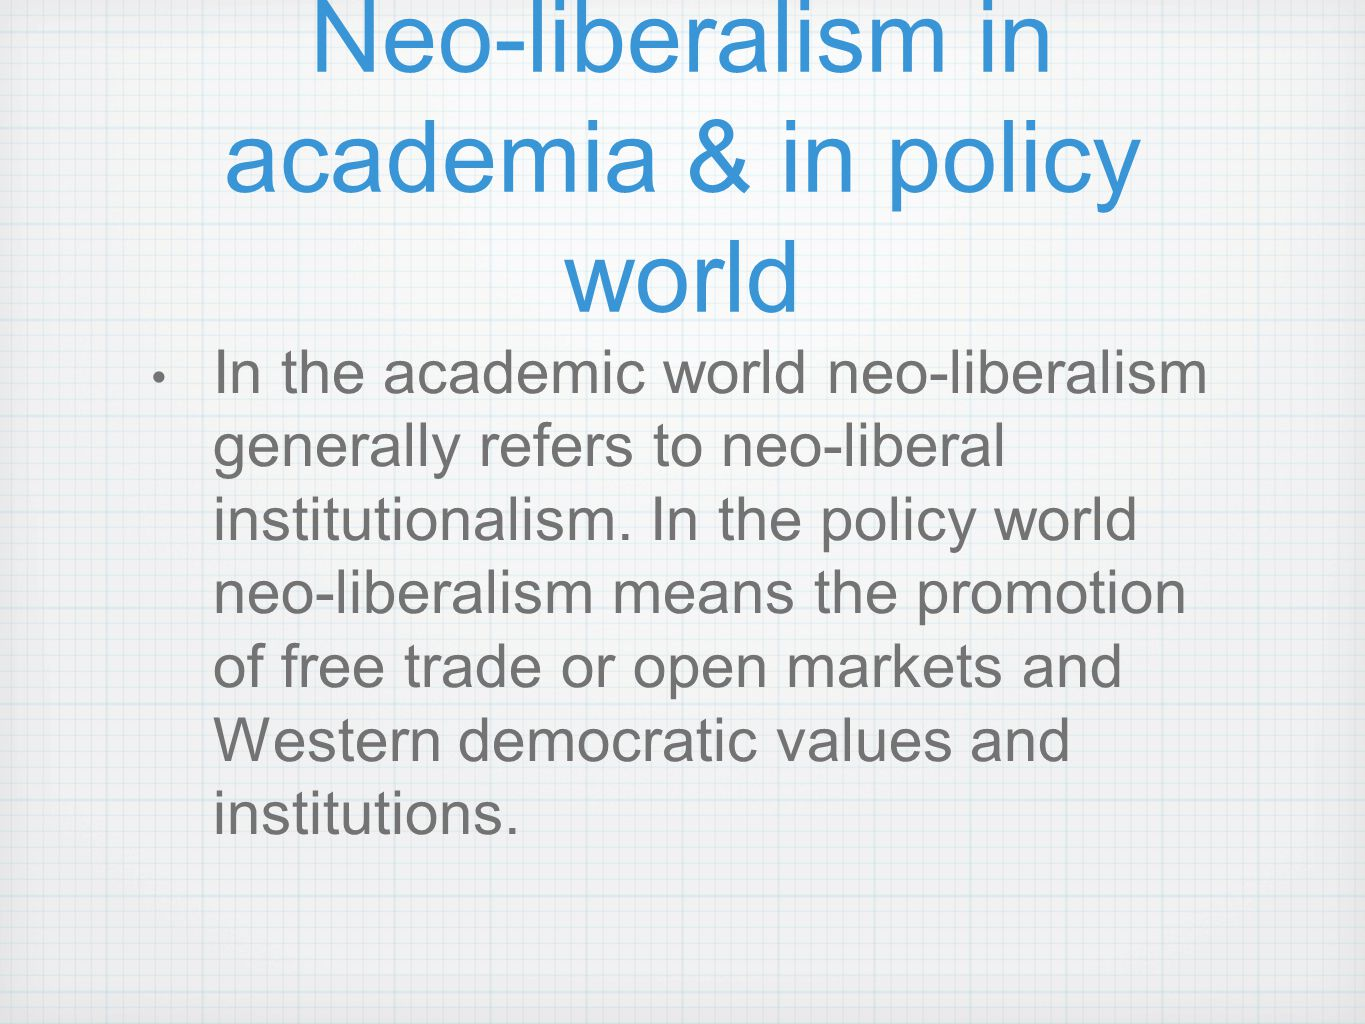 Neo-liberalism in academia & in policy world